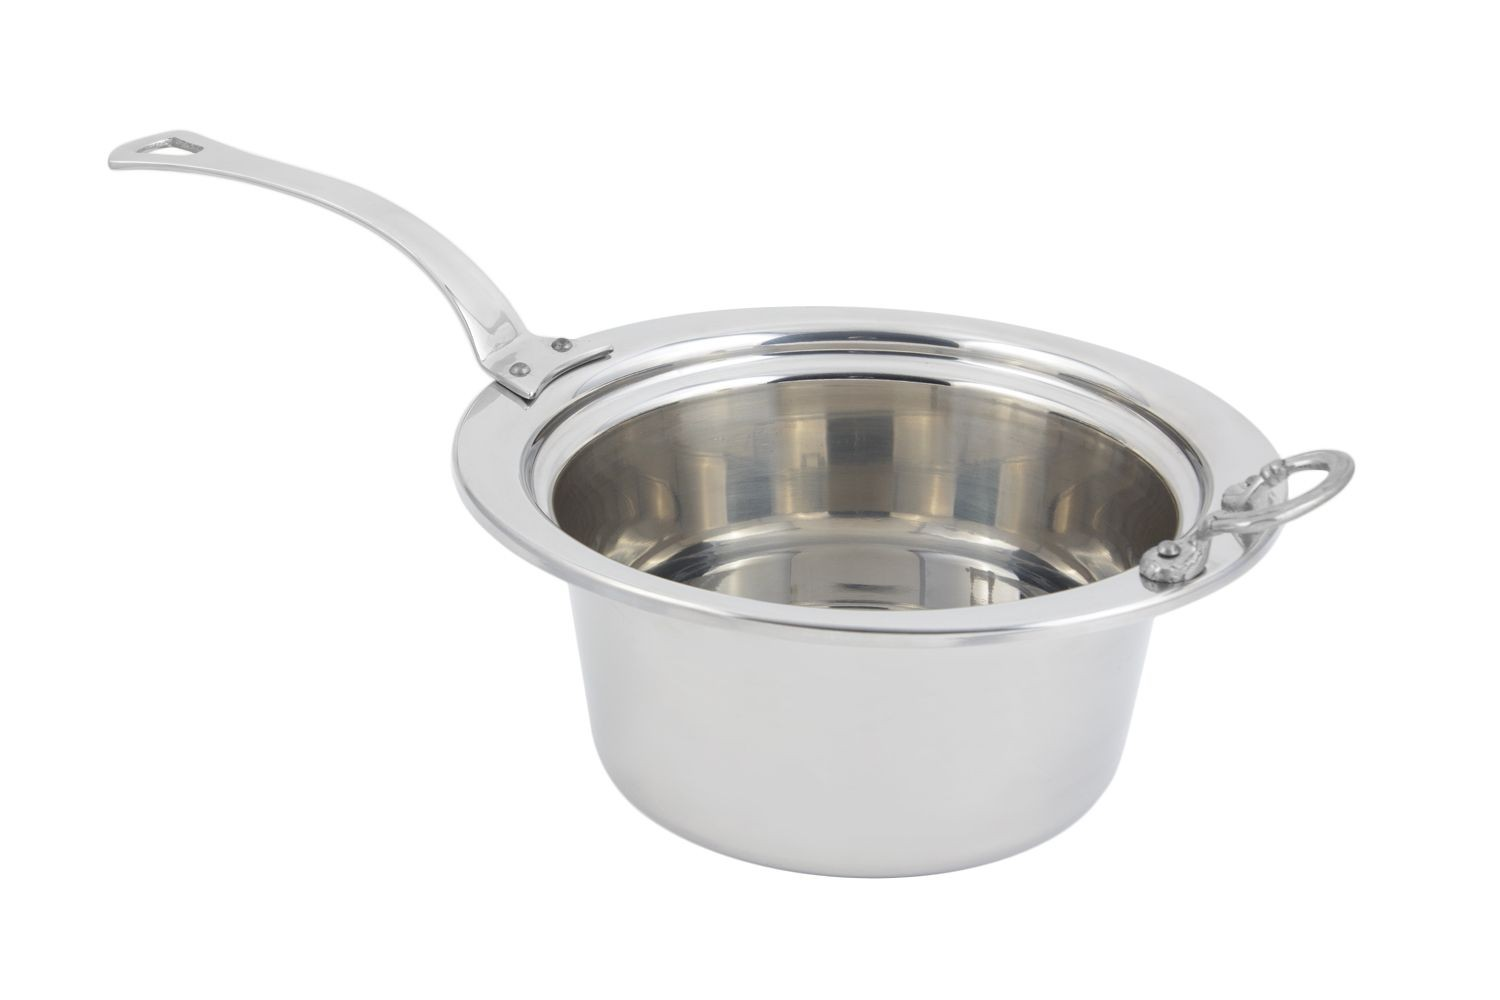 Bon Chef 5260HLSS Plain Design Casserole Dish with Long Stainless Steel Handle, 5 Qt.